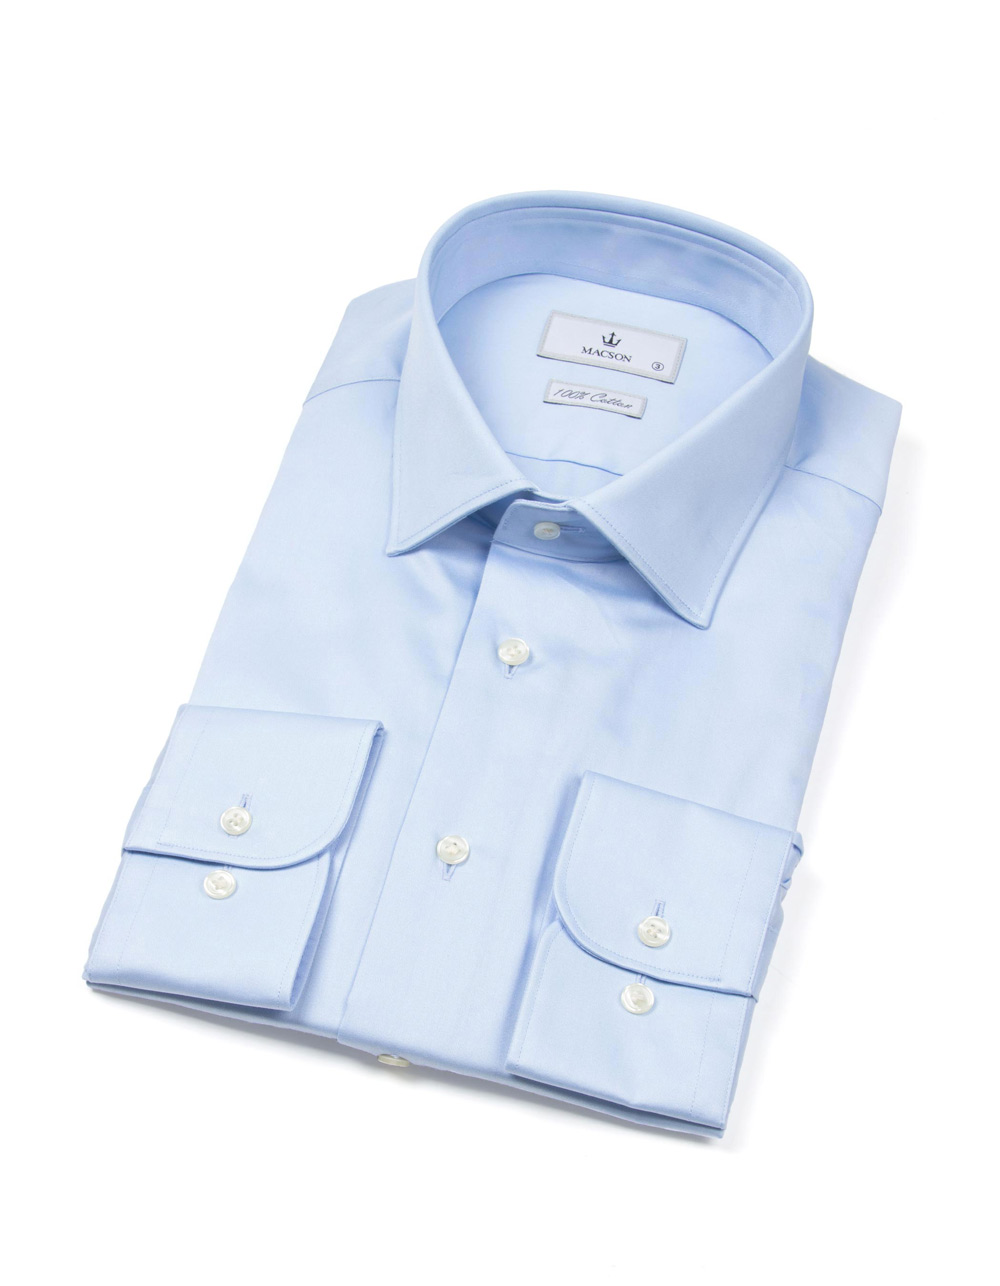 Blue fil à fil shirt